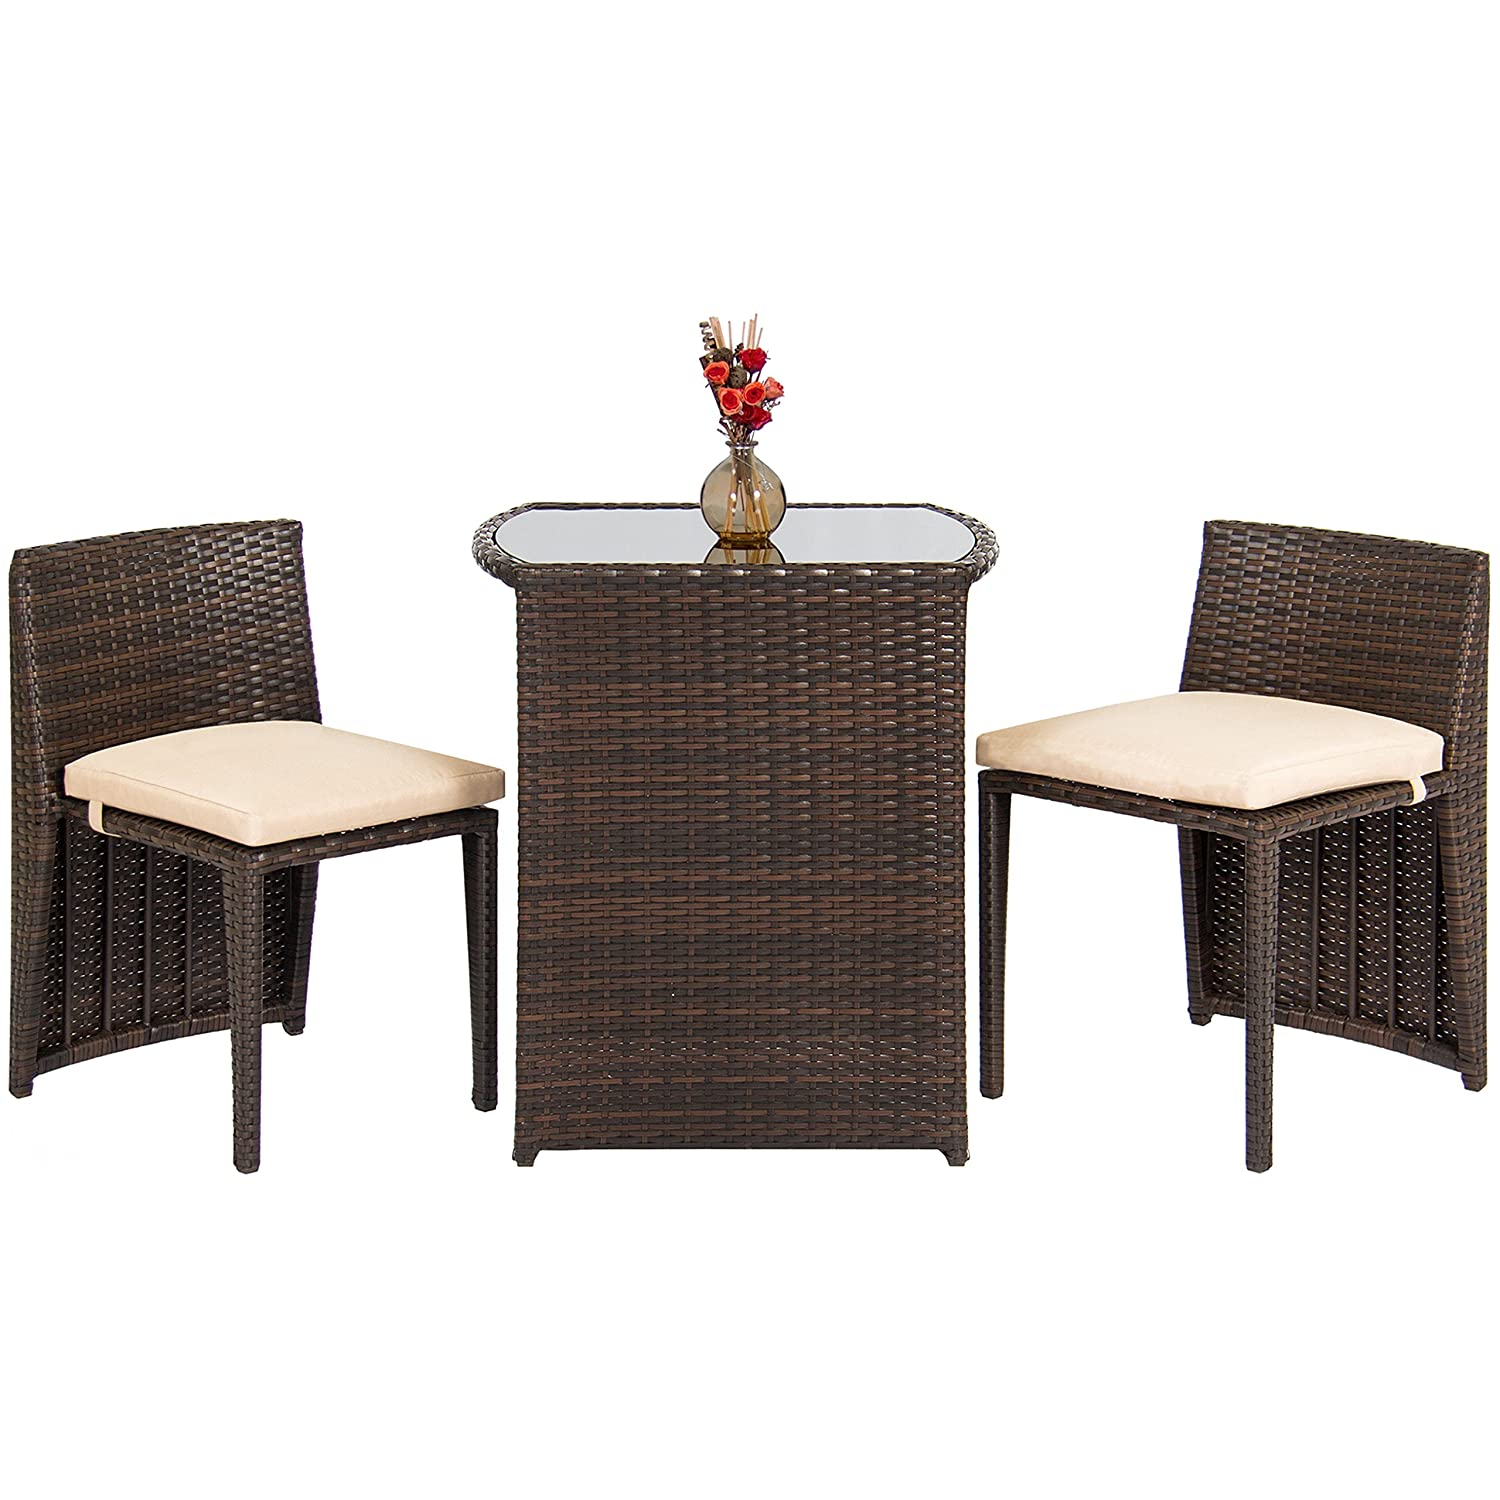 with of coffee buy living sw product dezaro four in india table at wooden best stools online prices set